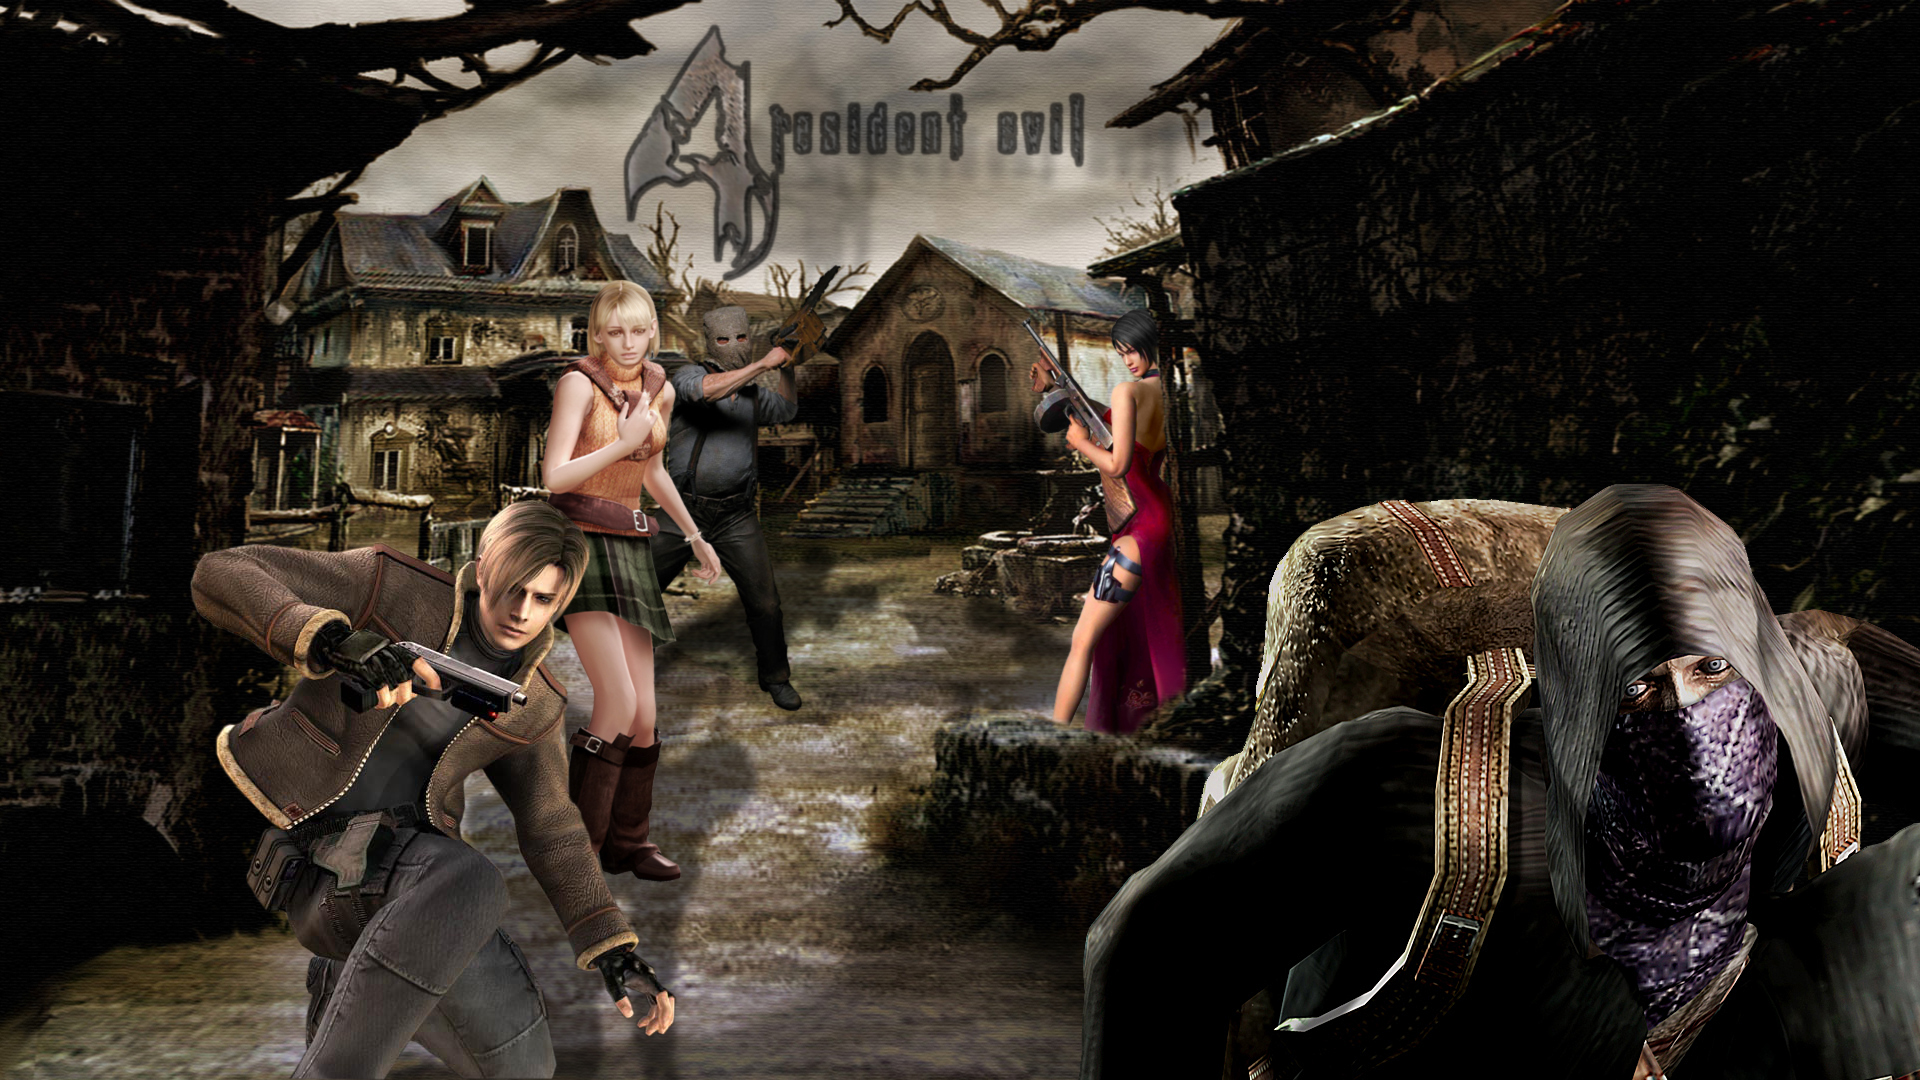 Resident Evil 4 Hd Wallpaper Background Image 1920x1080 Id 672729 Wallpaper Abyss